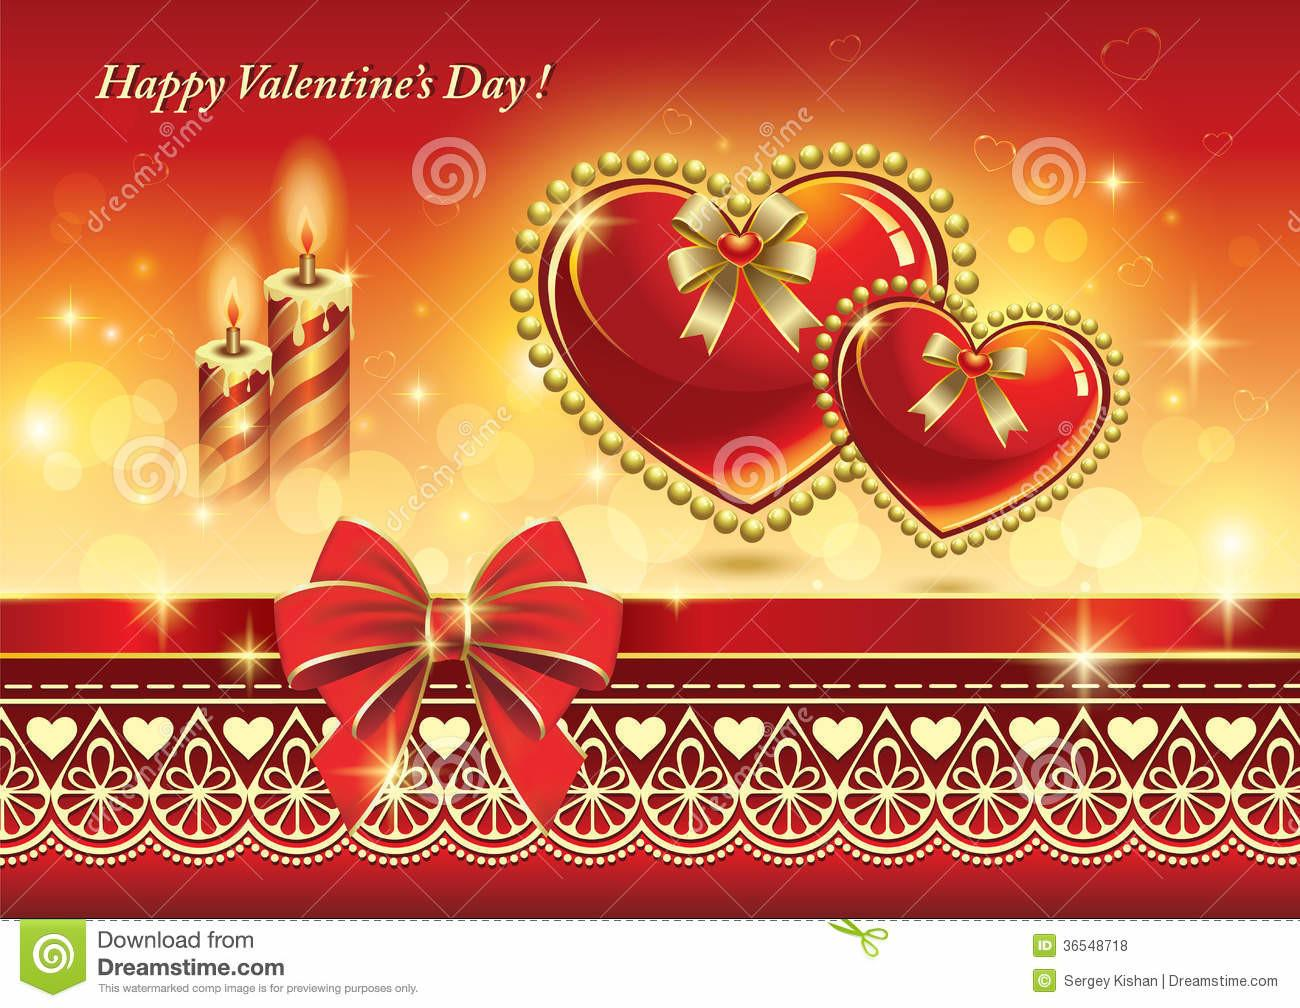 Romantic Card Hearts Candles Valentin Stock